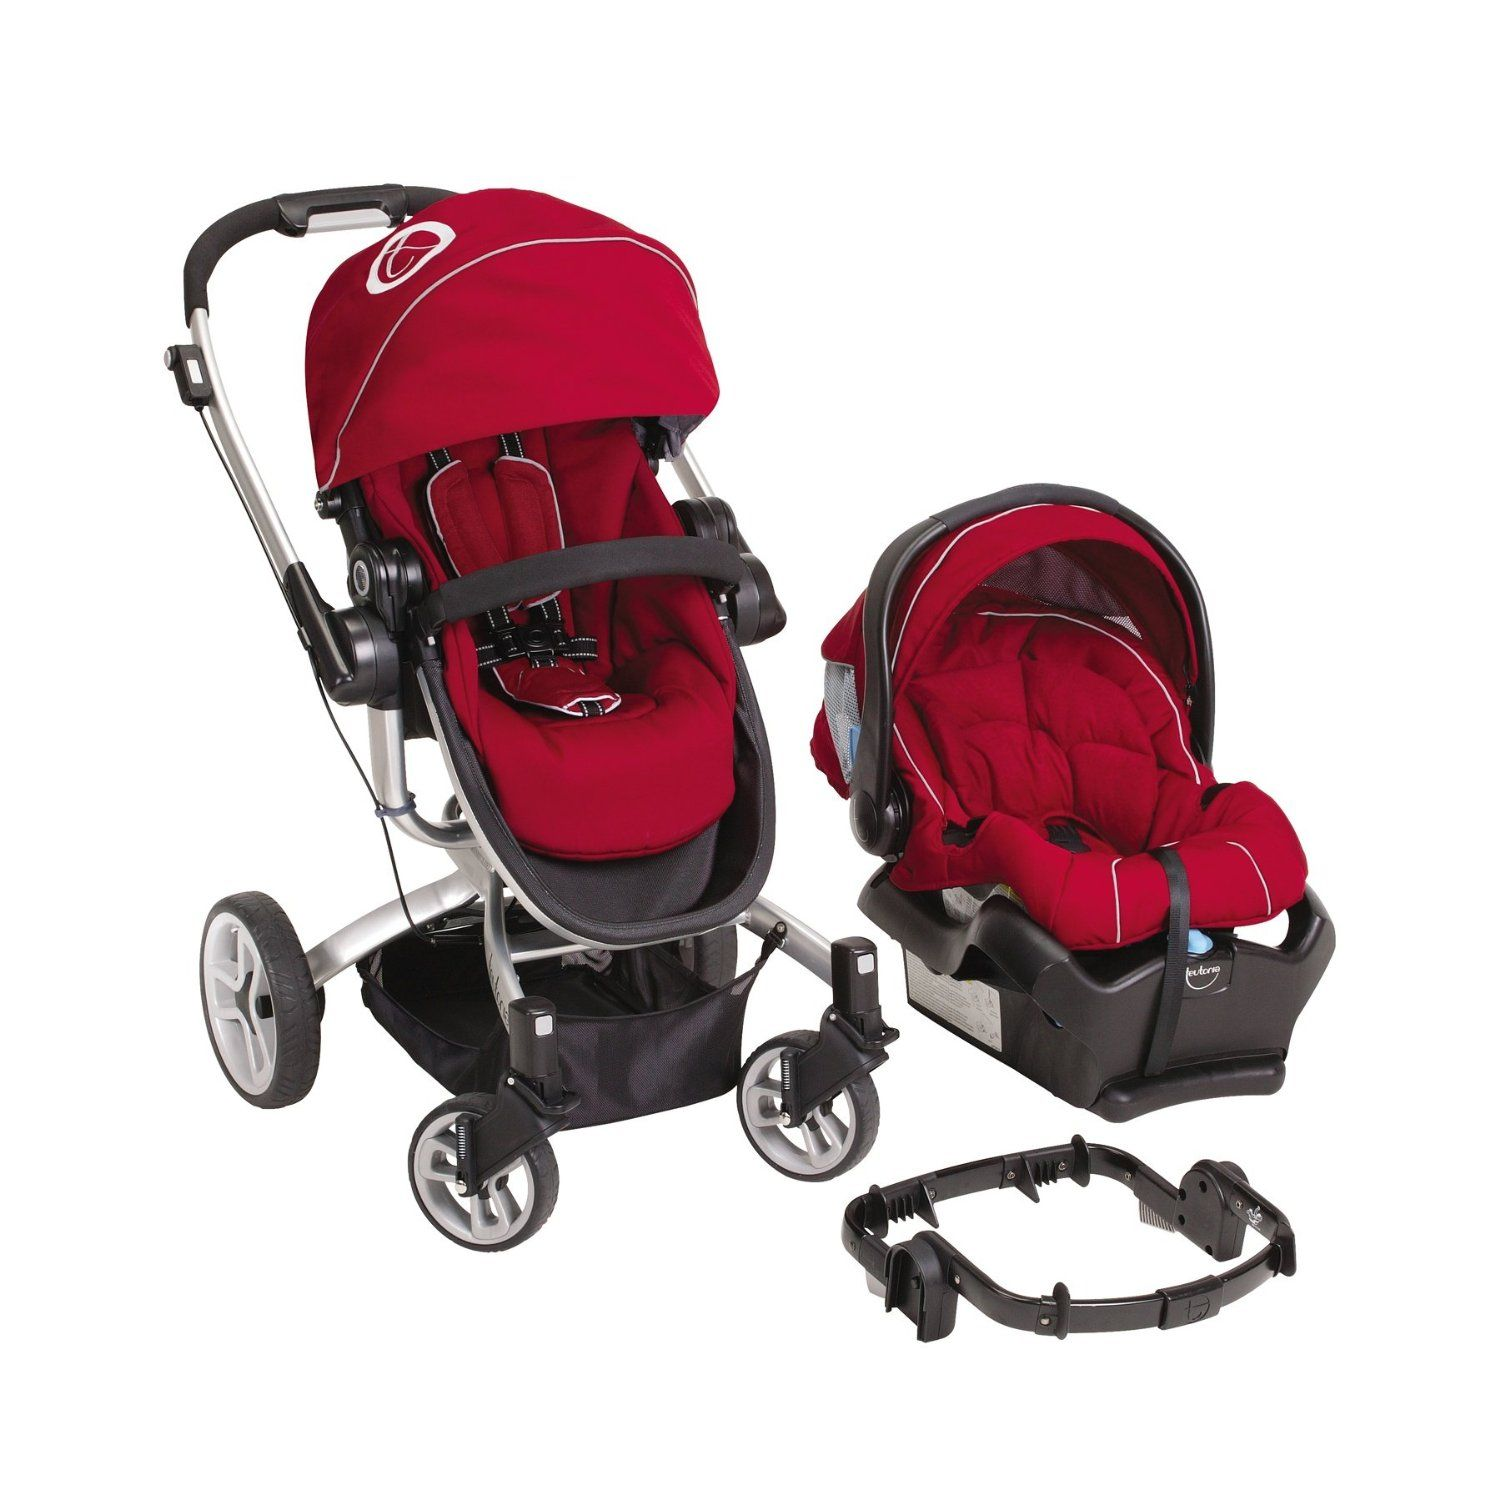 Baby Stroller Travel Systems. Teutonia TLinx System